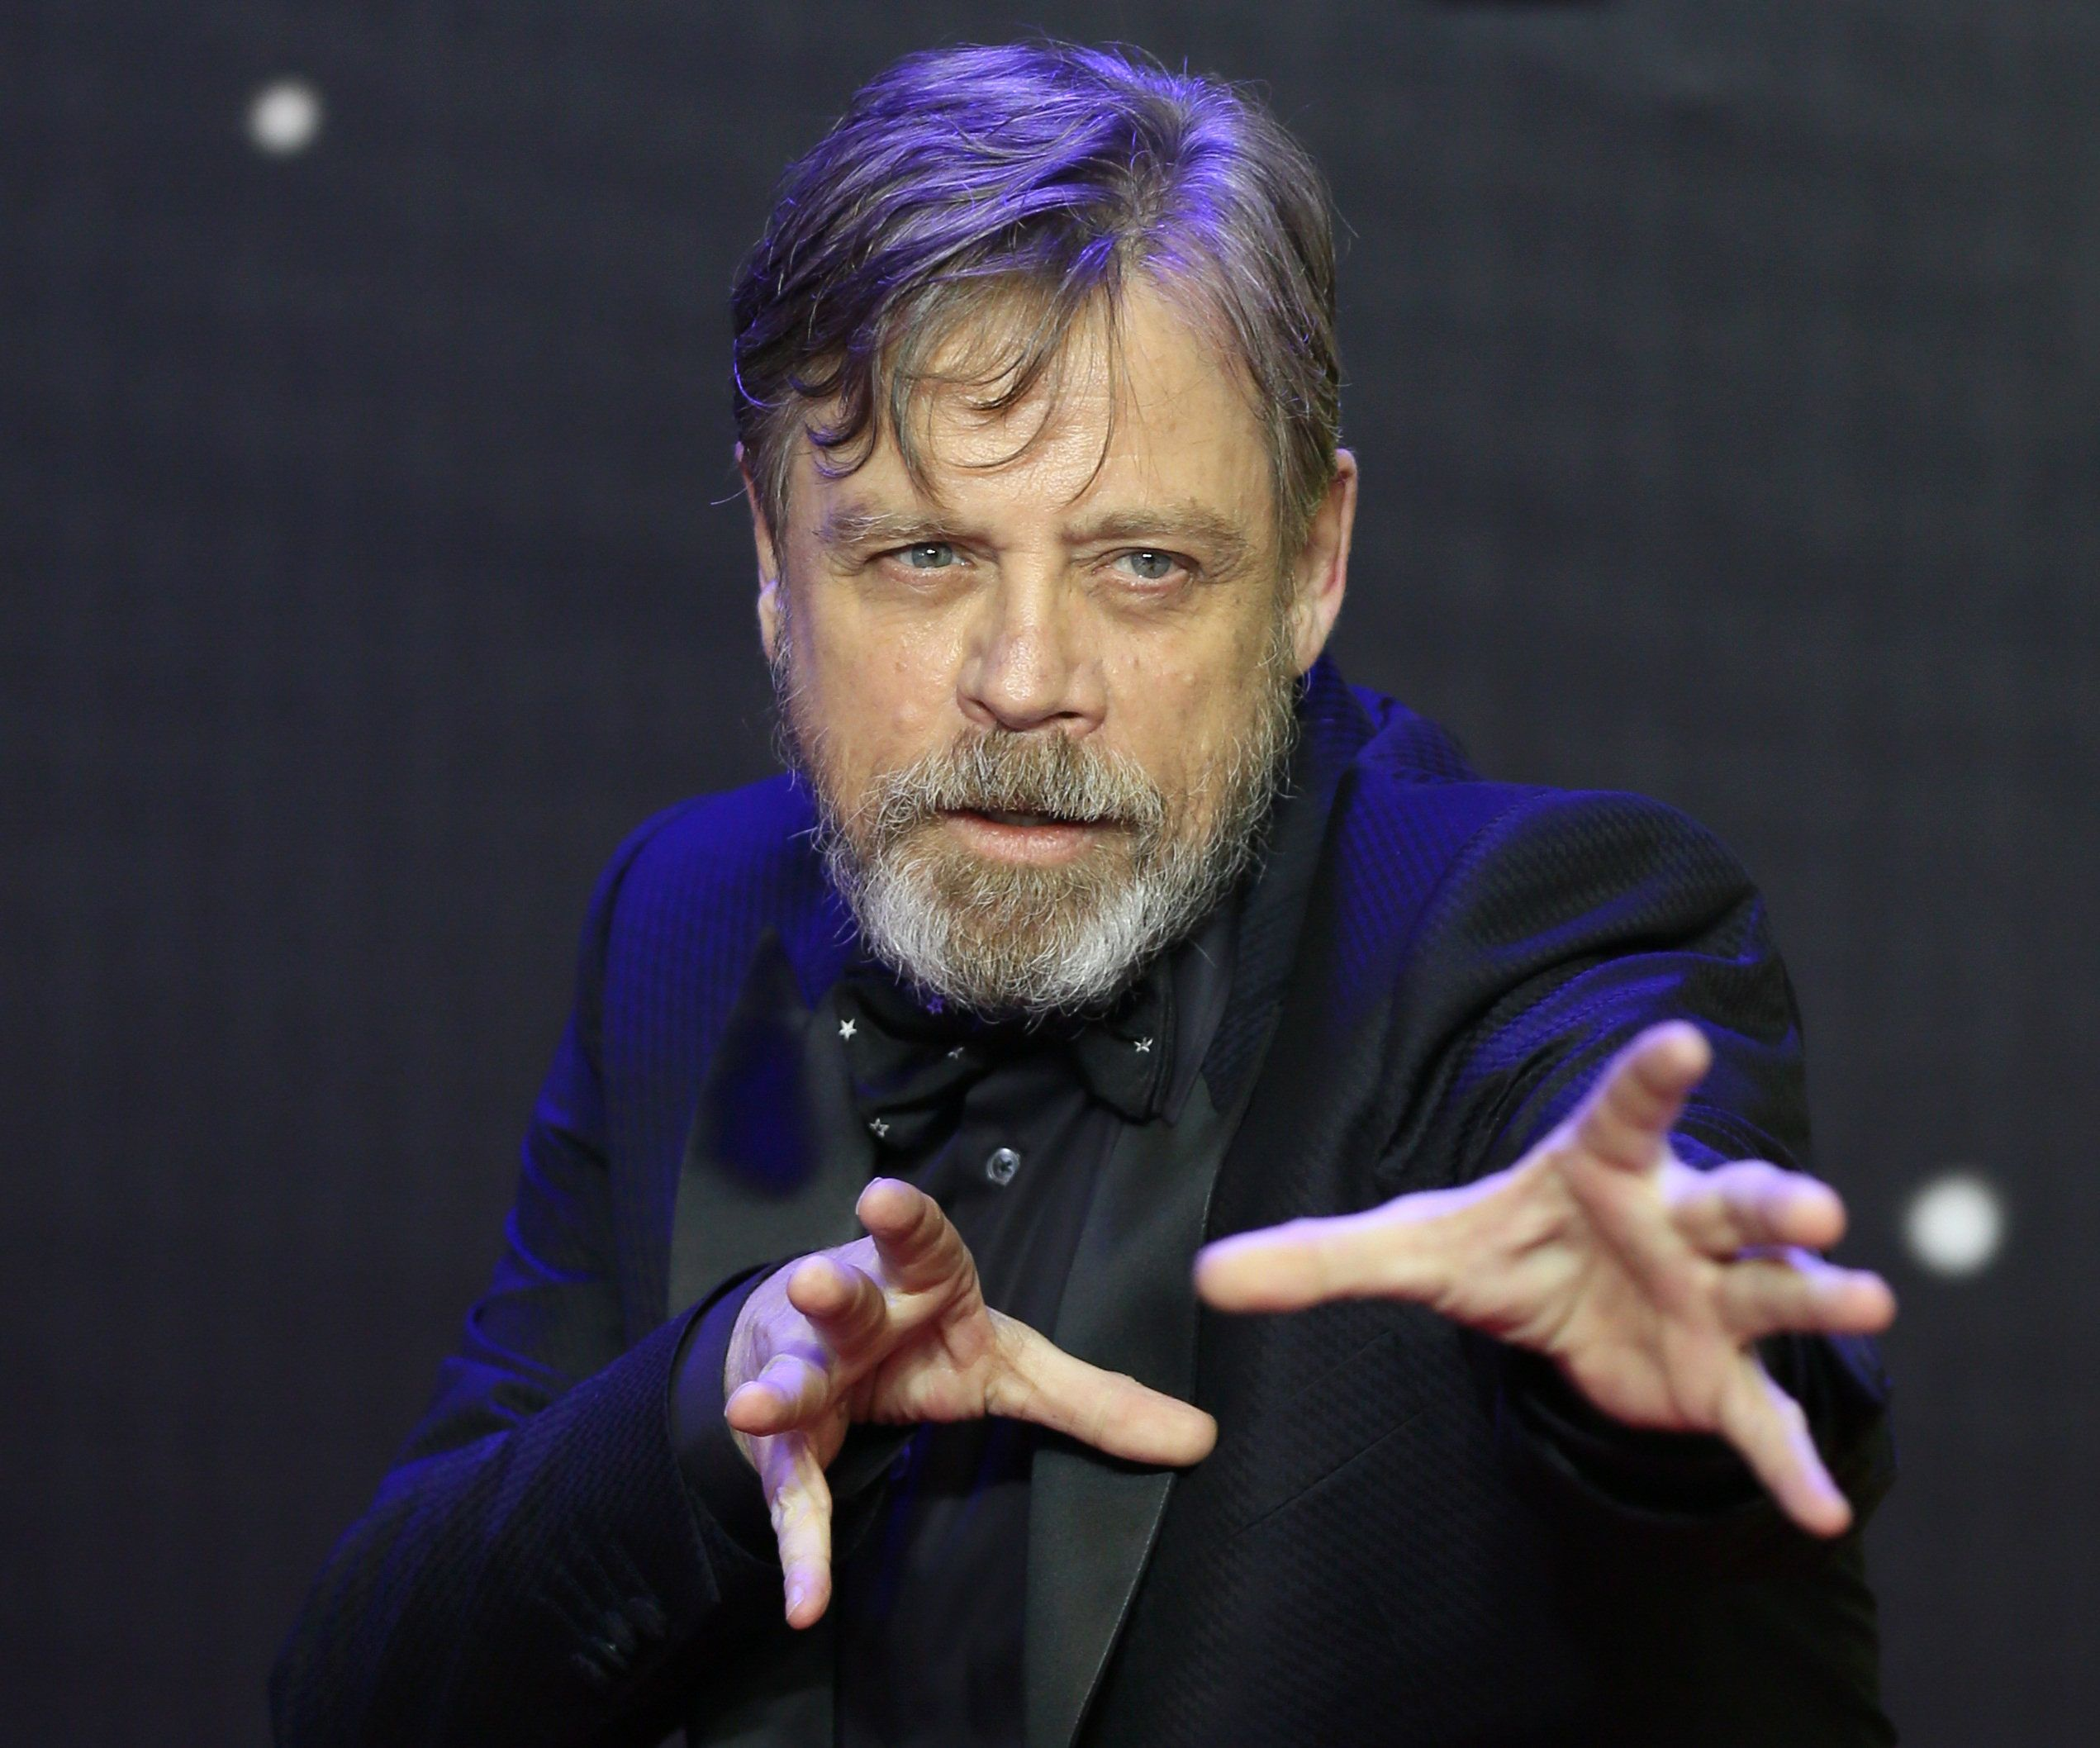 Actor Mark Hamill fires back after an Education Department bureaucrat attacked him on Twitter.